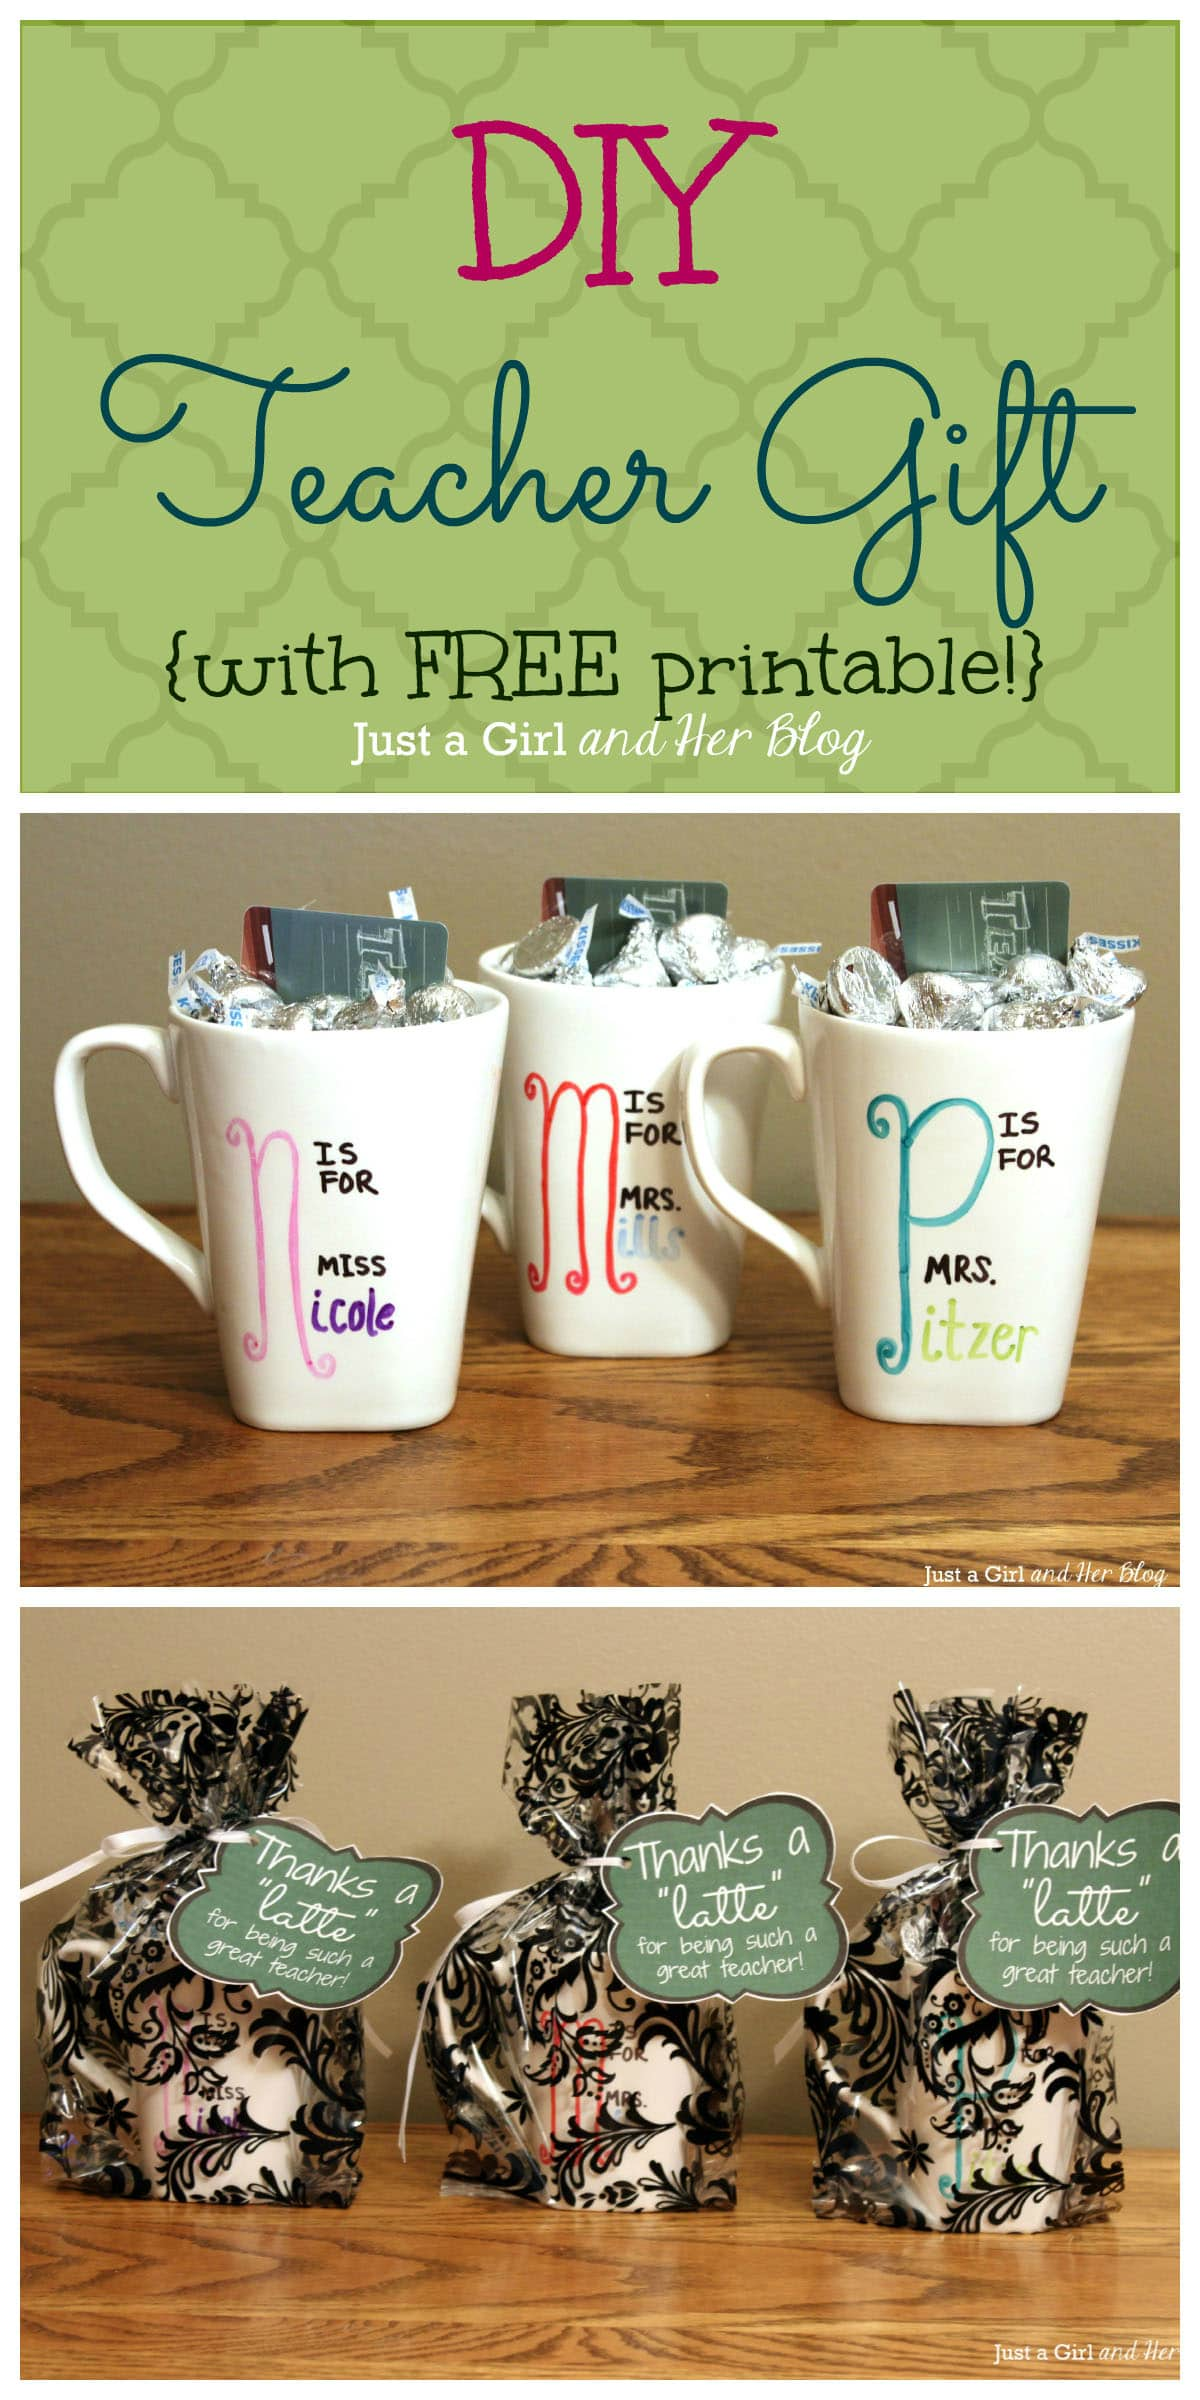 DIY Teacher Gift with FREE Printable!